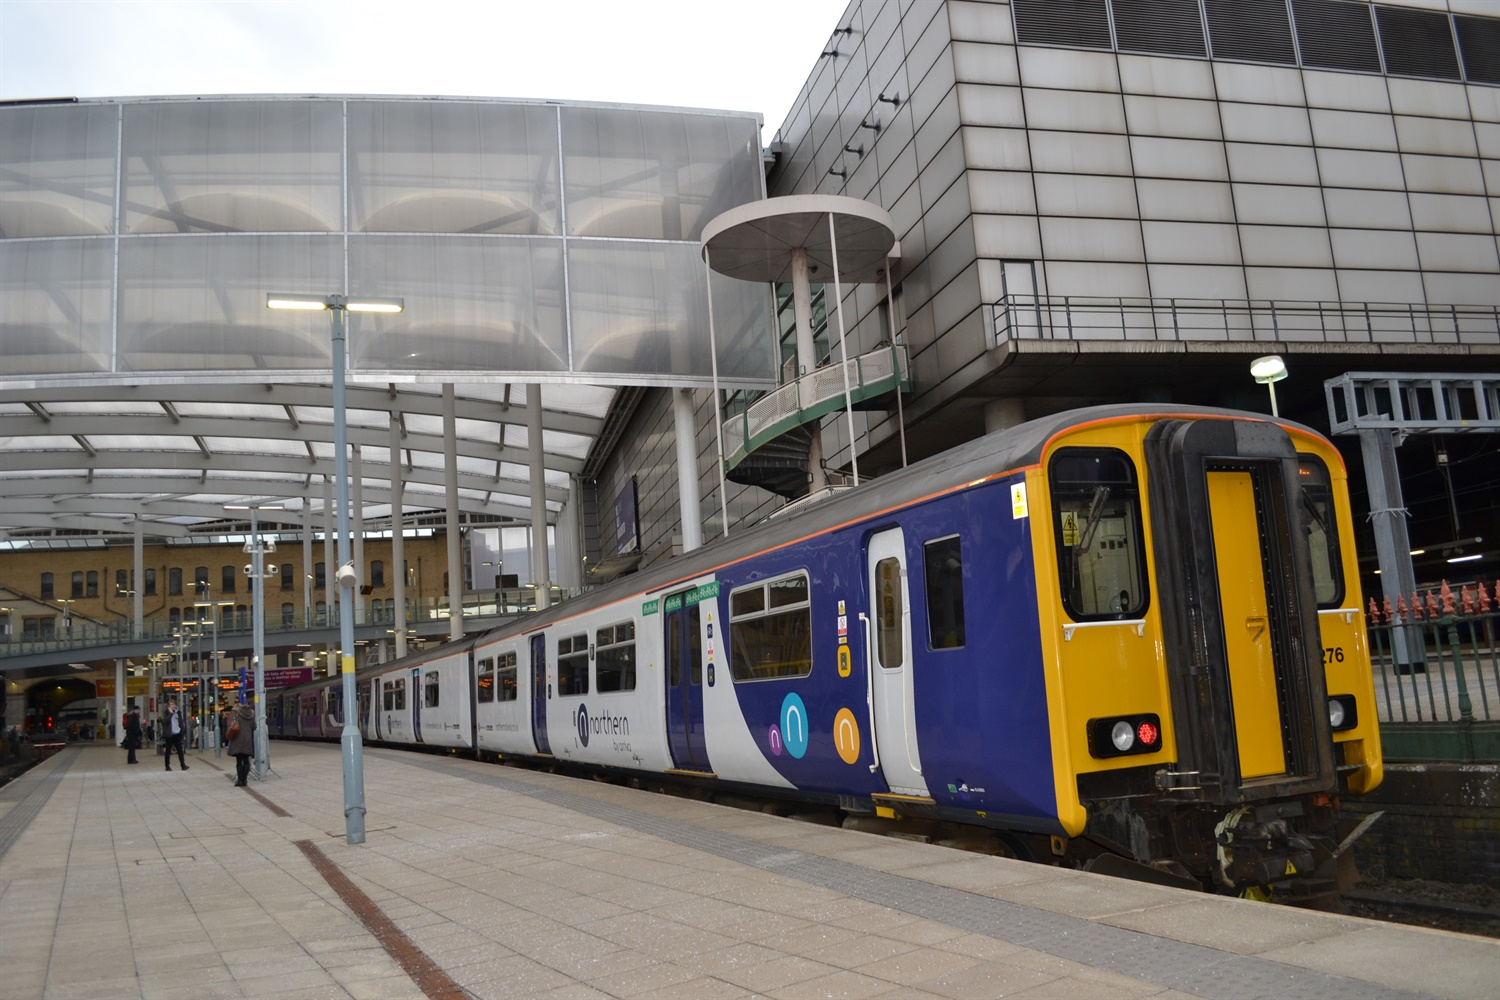 Northern franchise enters government control